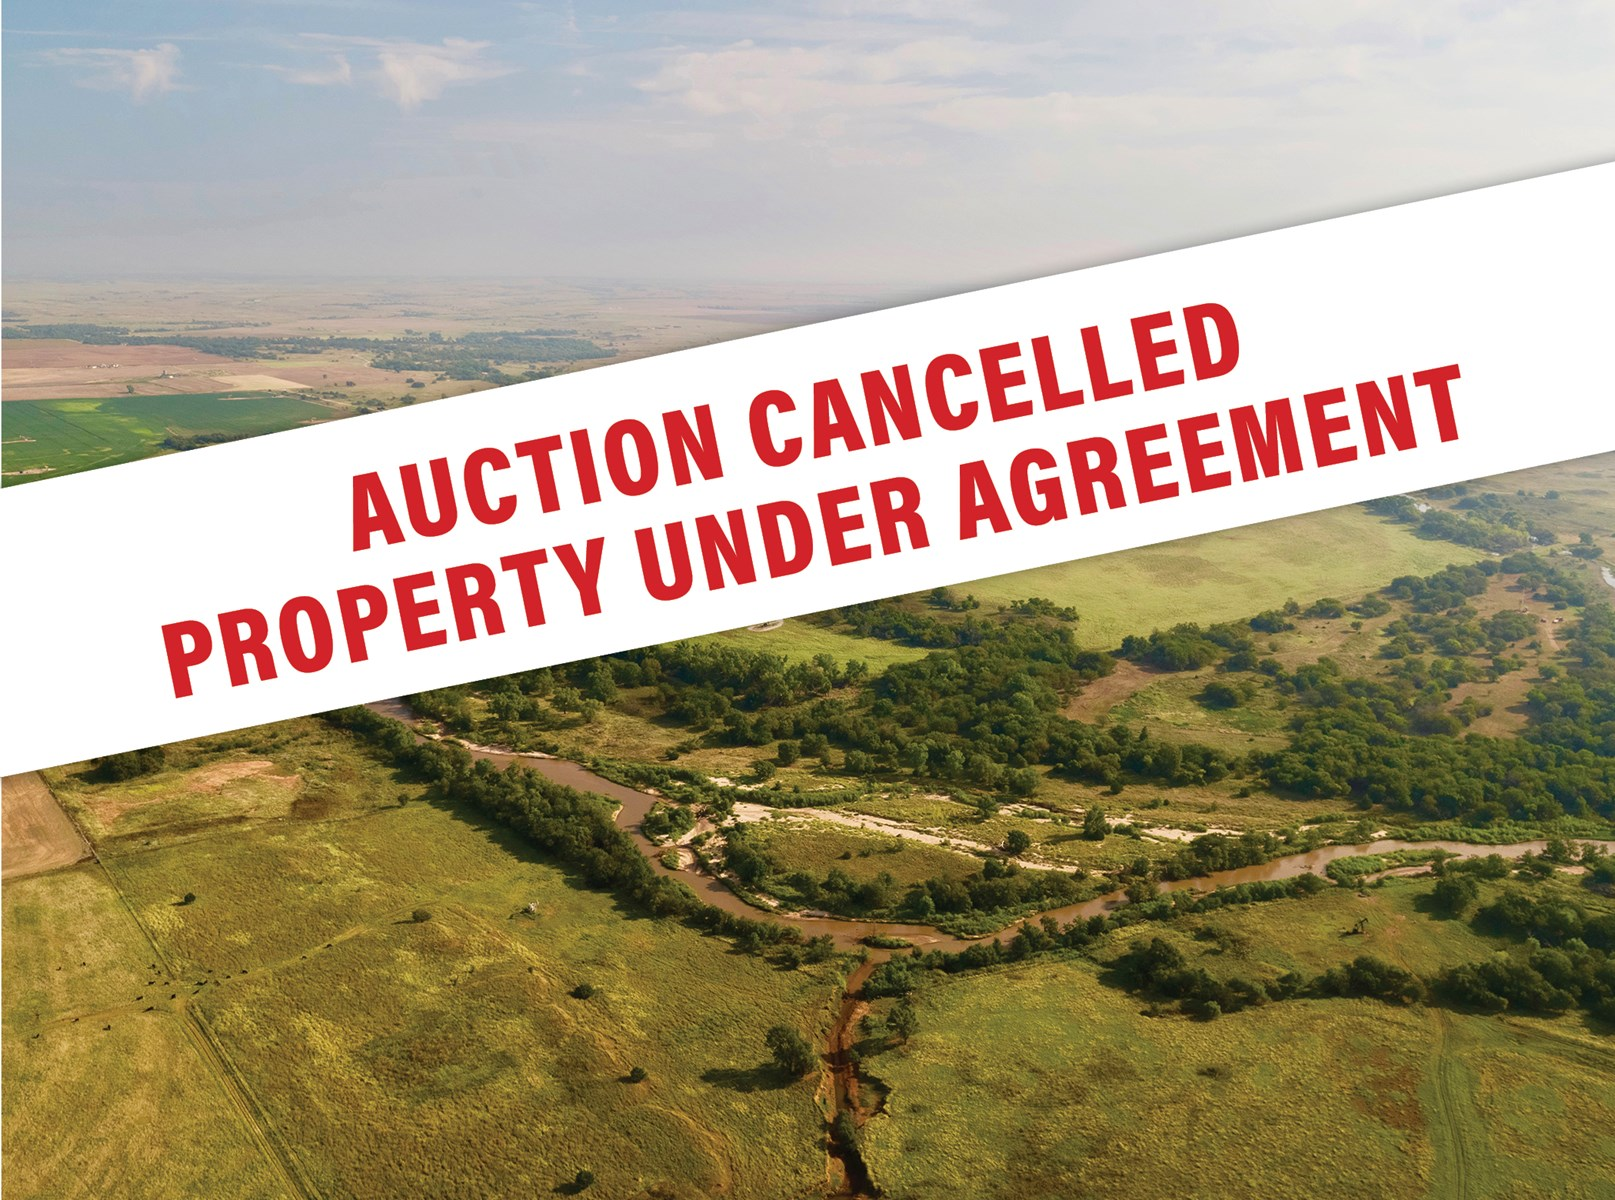 LAND RANCH FOR SALE BARBER COUNTY KANSAS AUCTION HUNTING